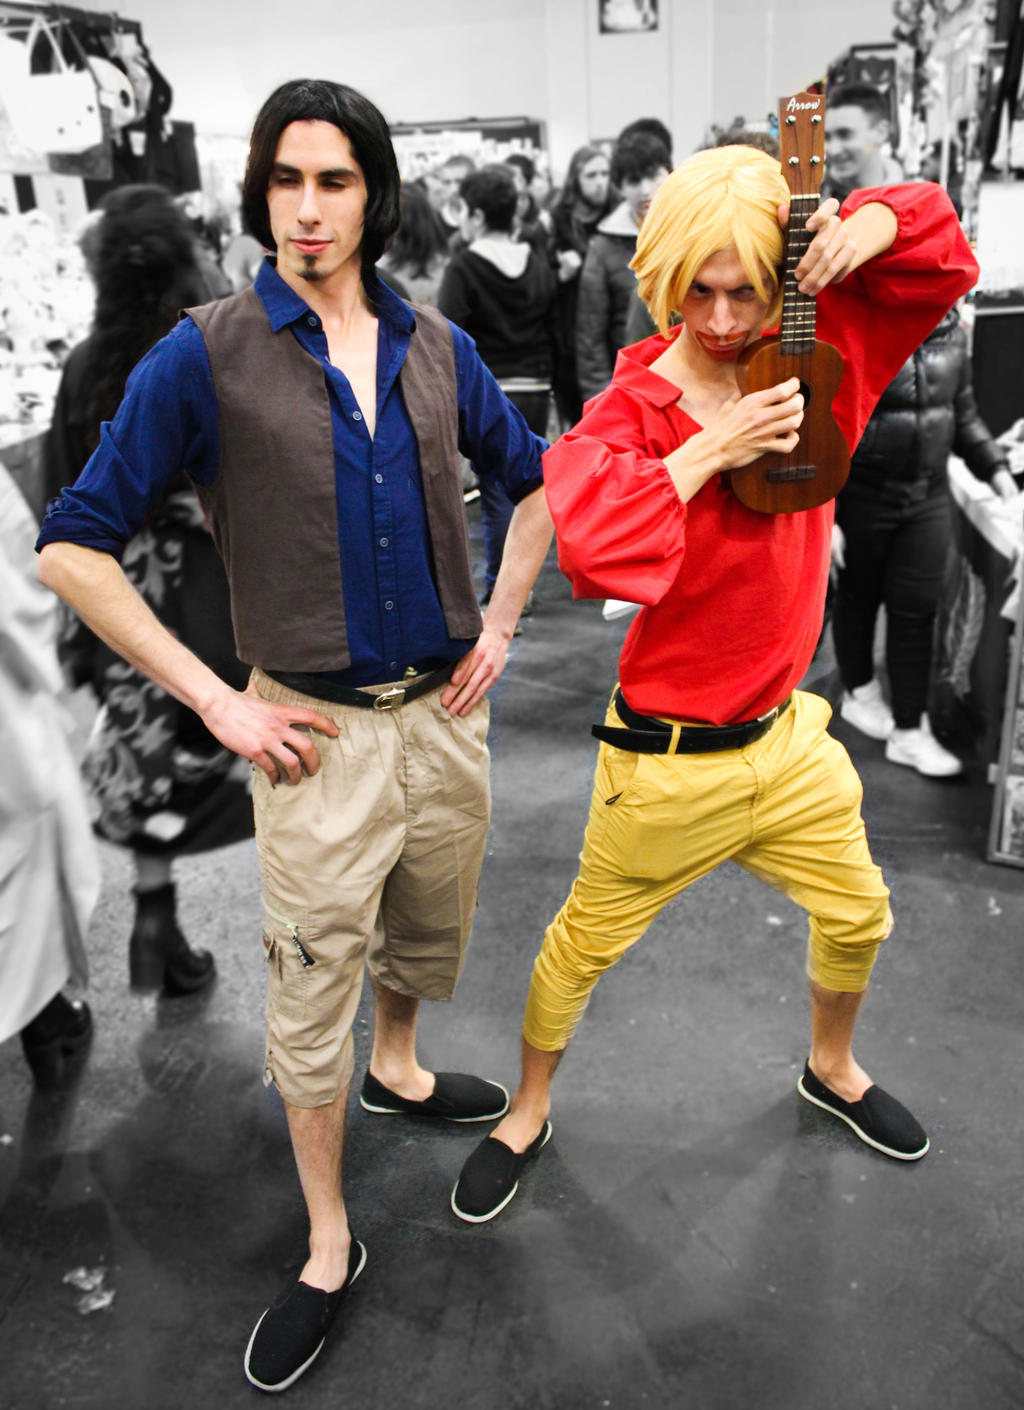 The road to el dorado cosplay